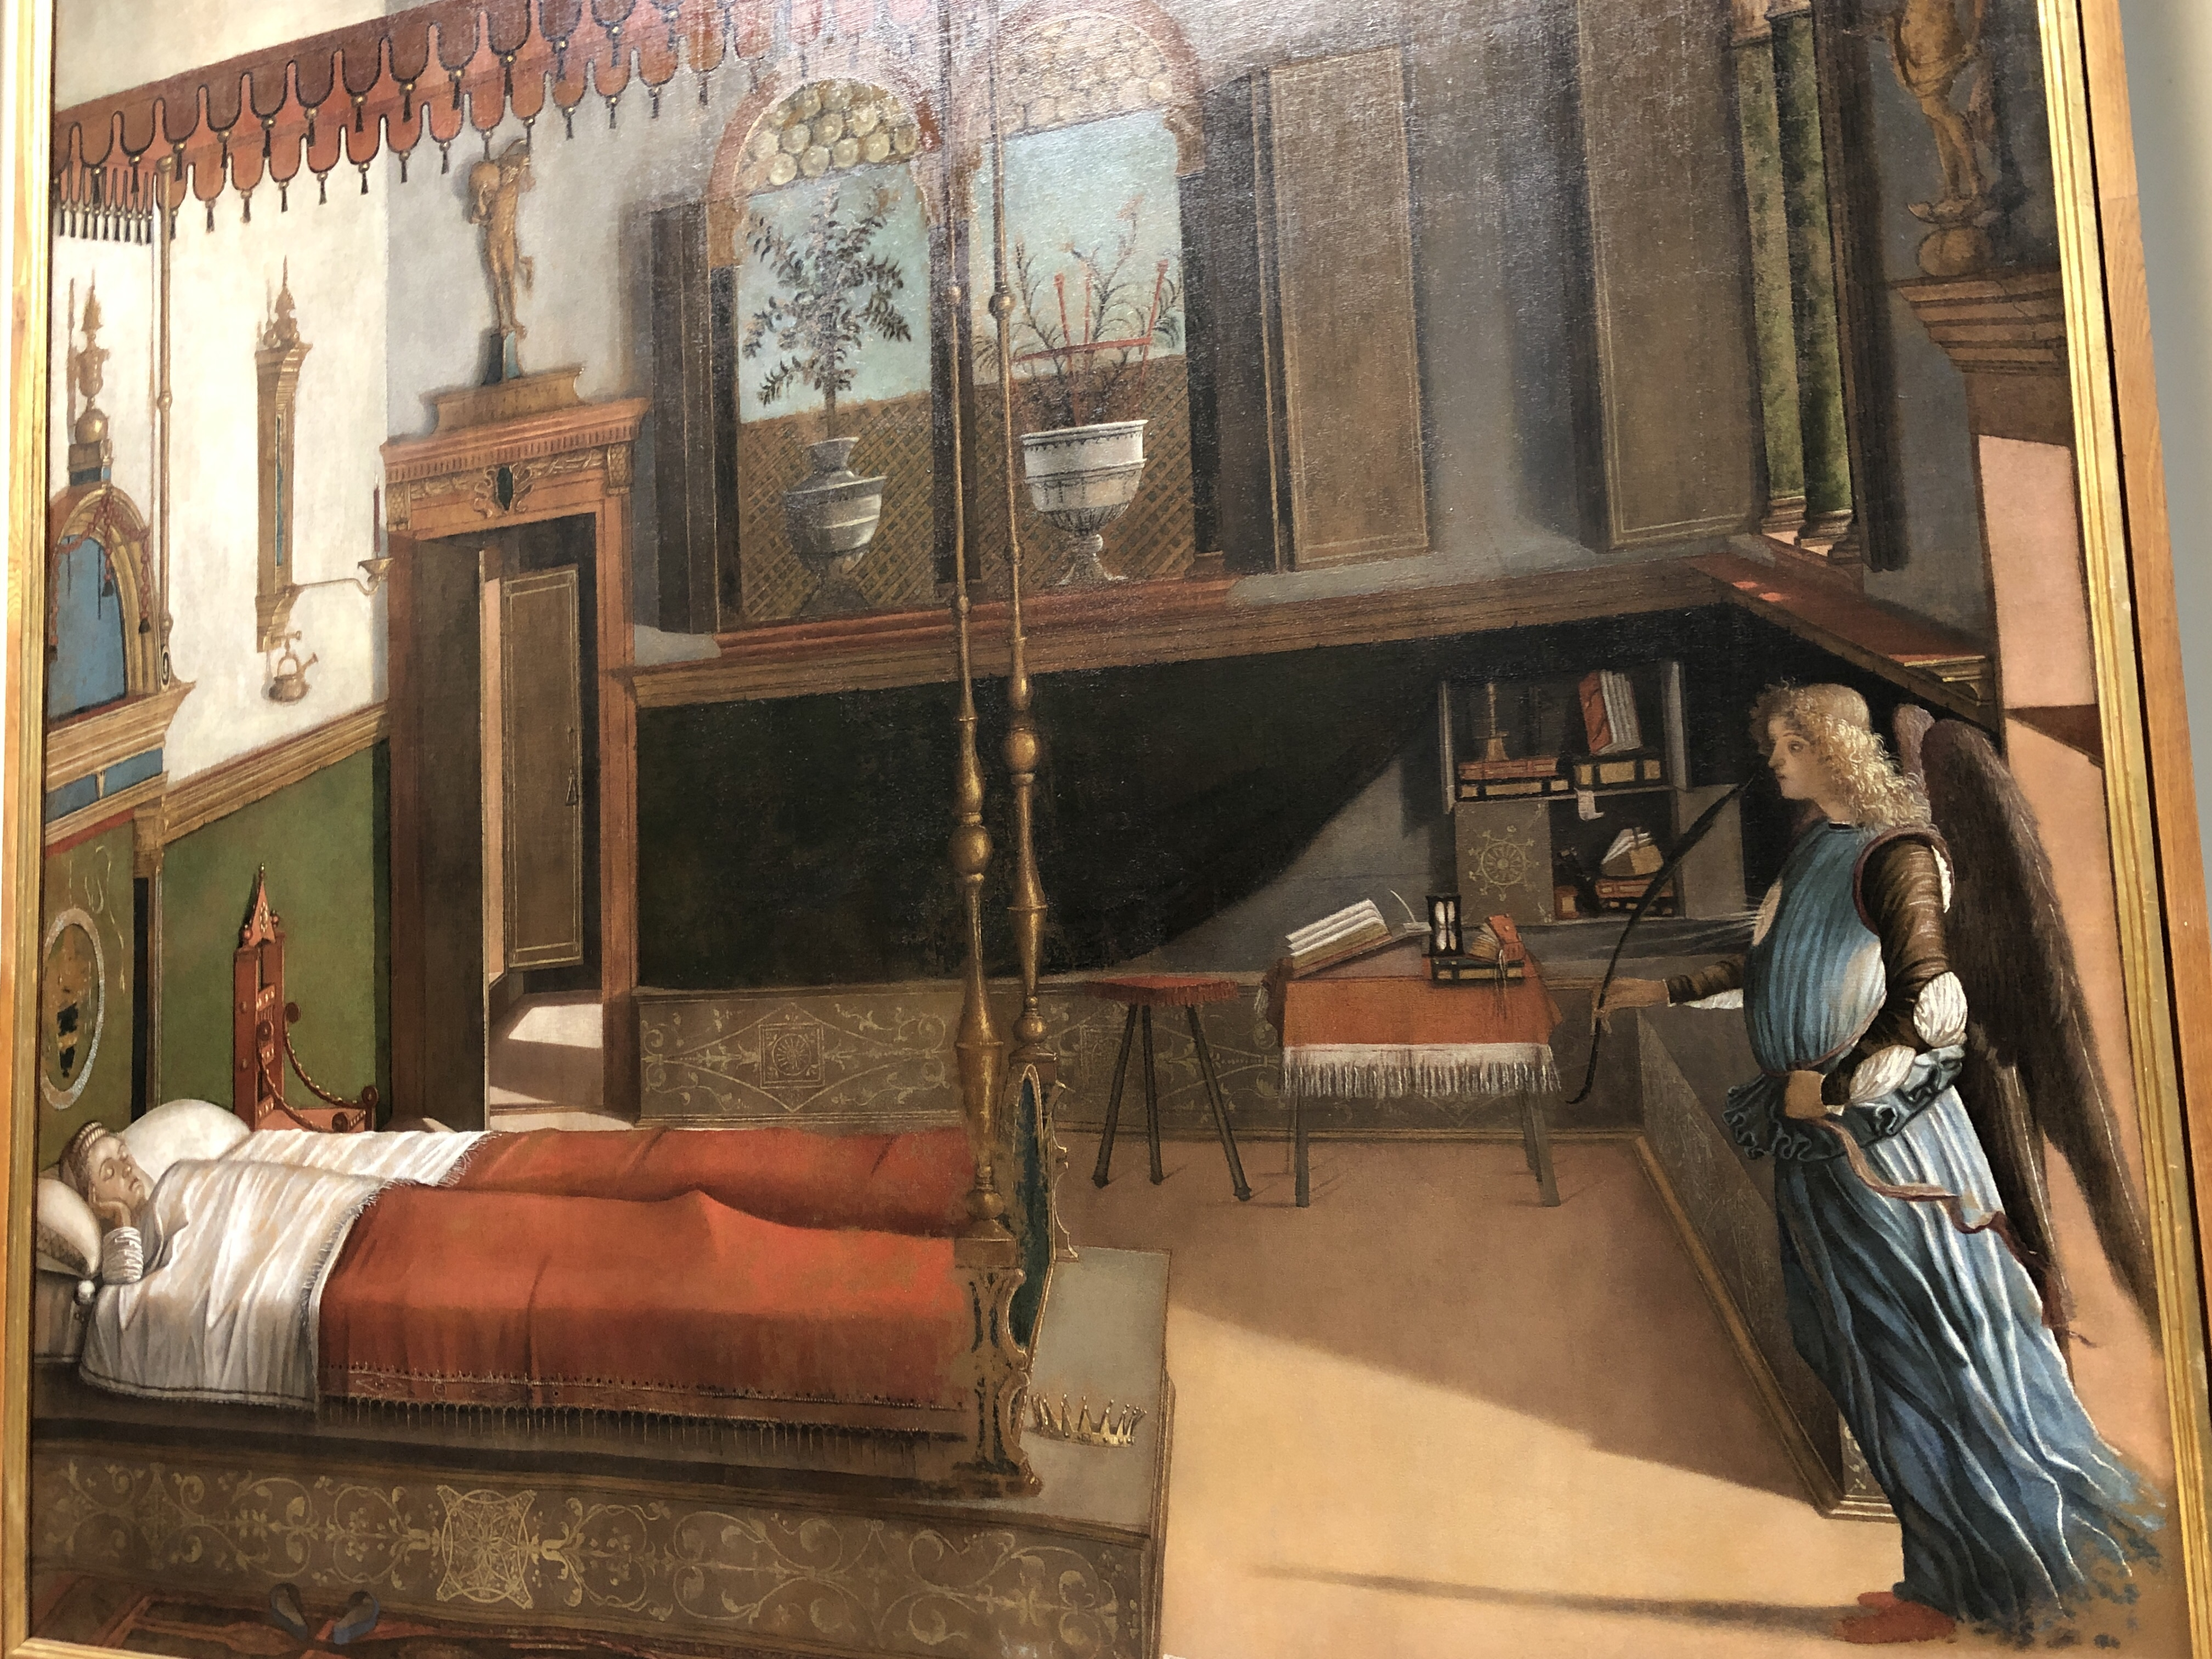 The Dream of St Ursula - Accademia, Venezia - artist Carpaccio